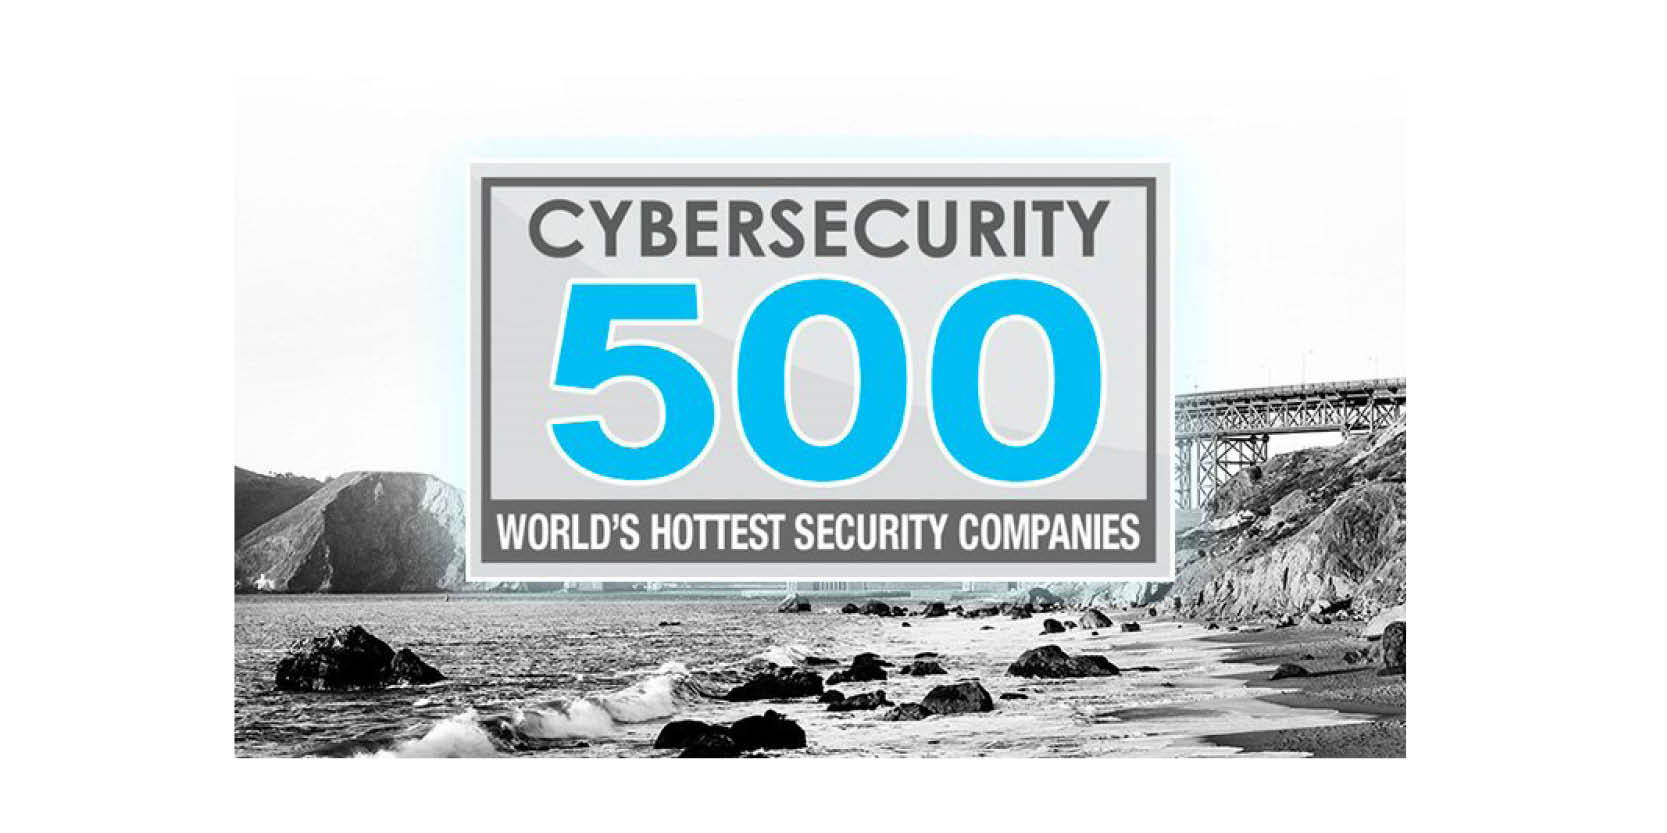 Cybersecurity Ventures: The Cybersecurity 500